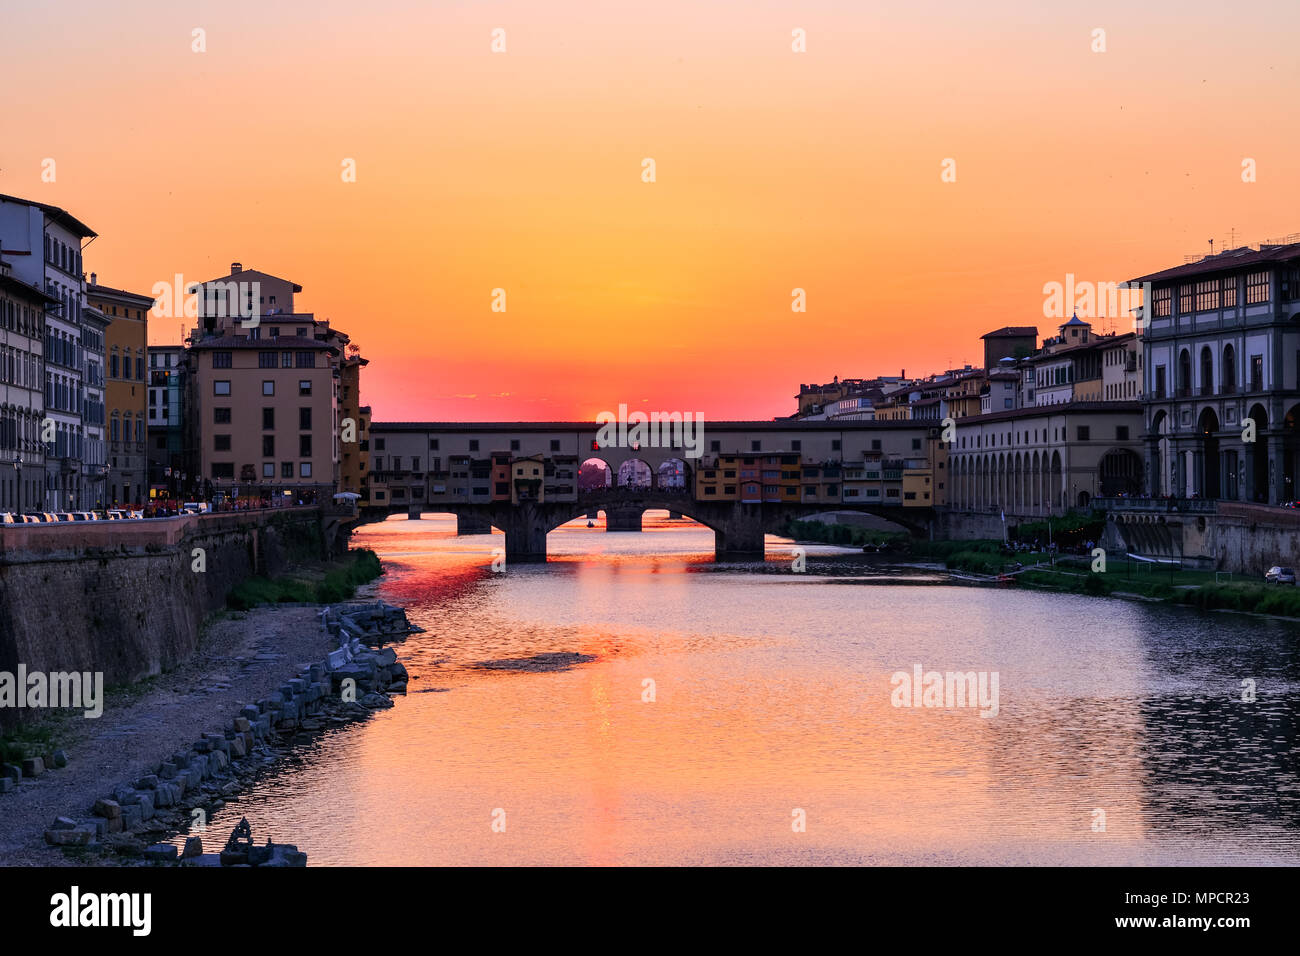 Sunset at Ponte Vecchio (Old Bridge) over the river Arno in Florence, Italy - Stock Image